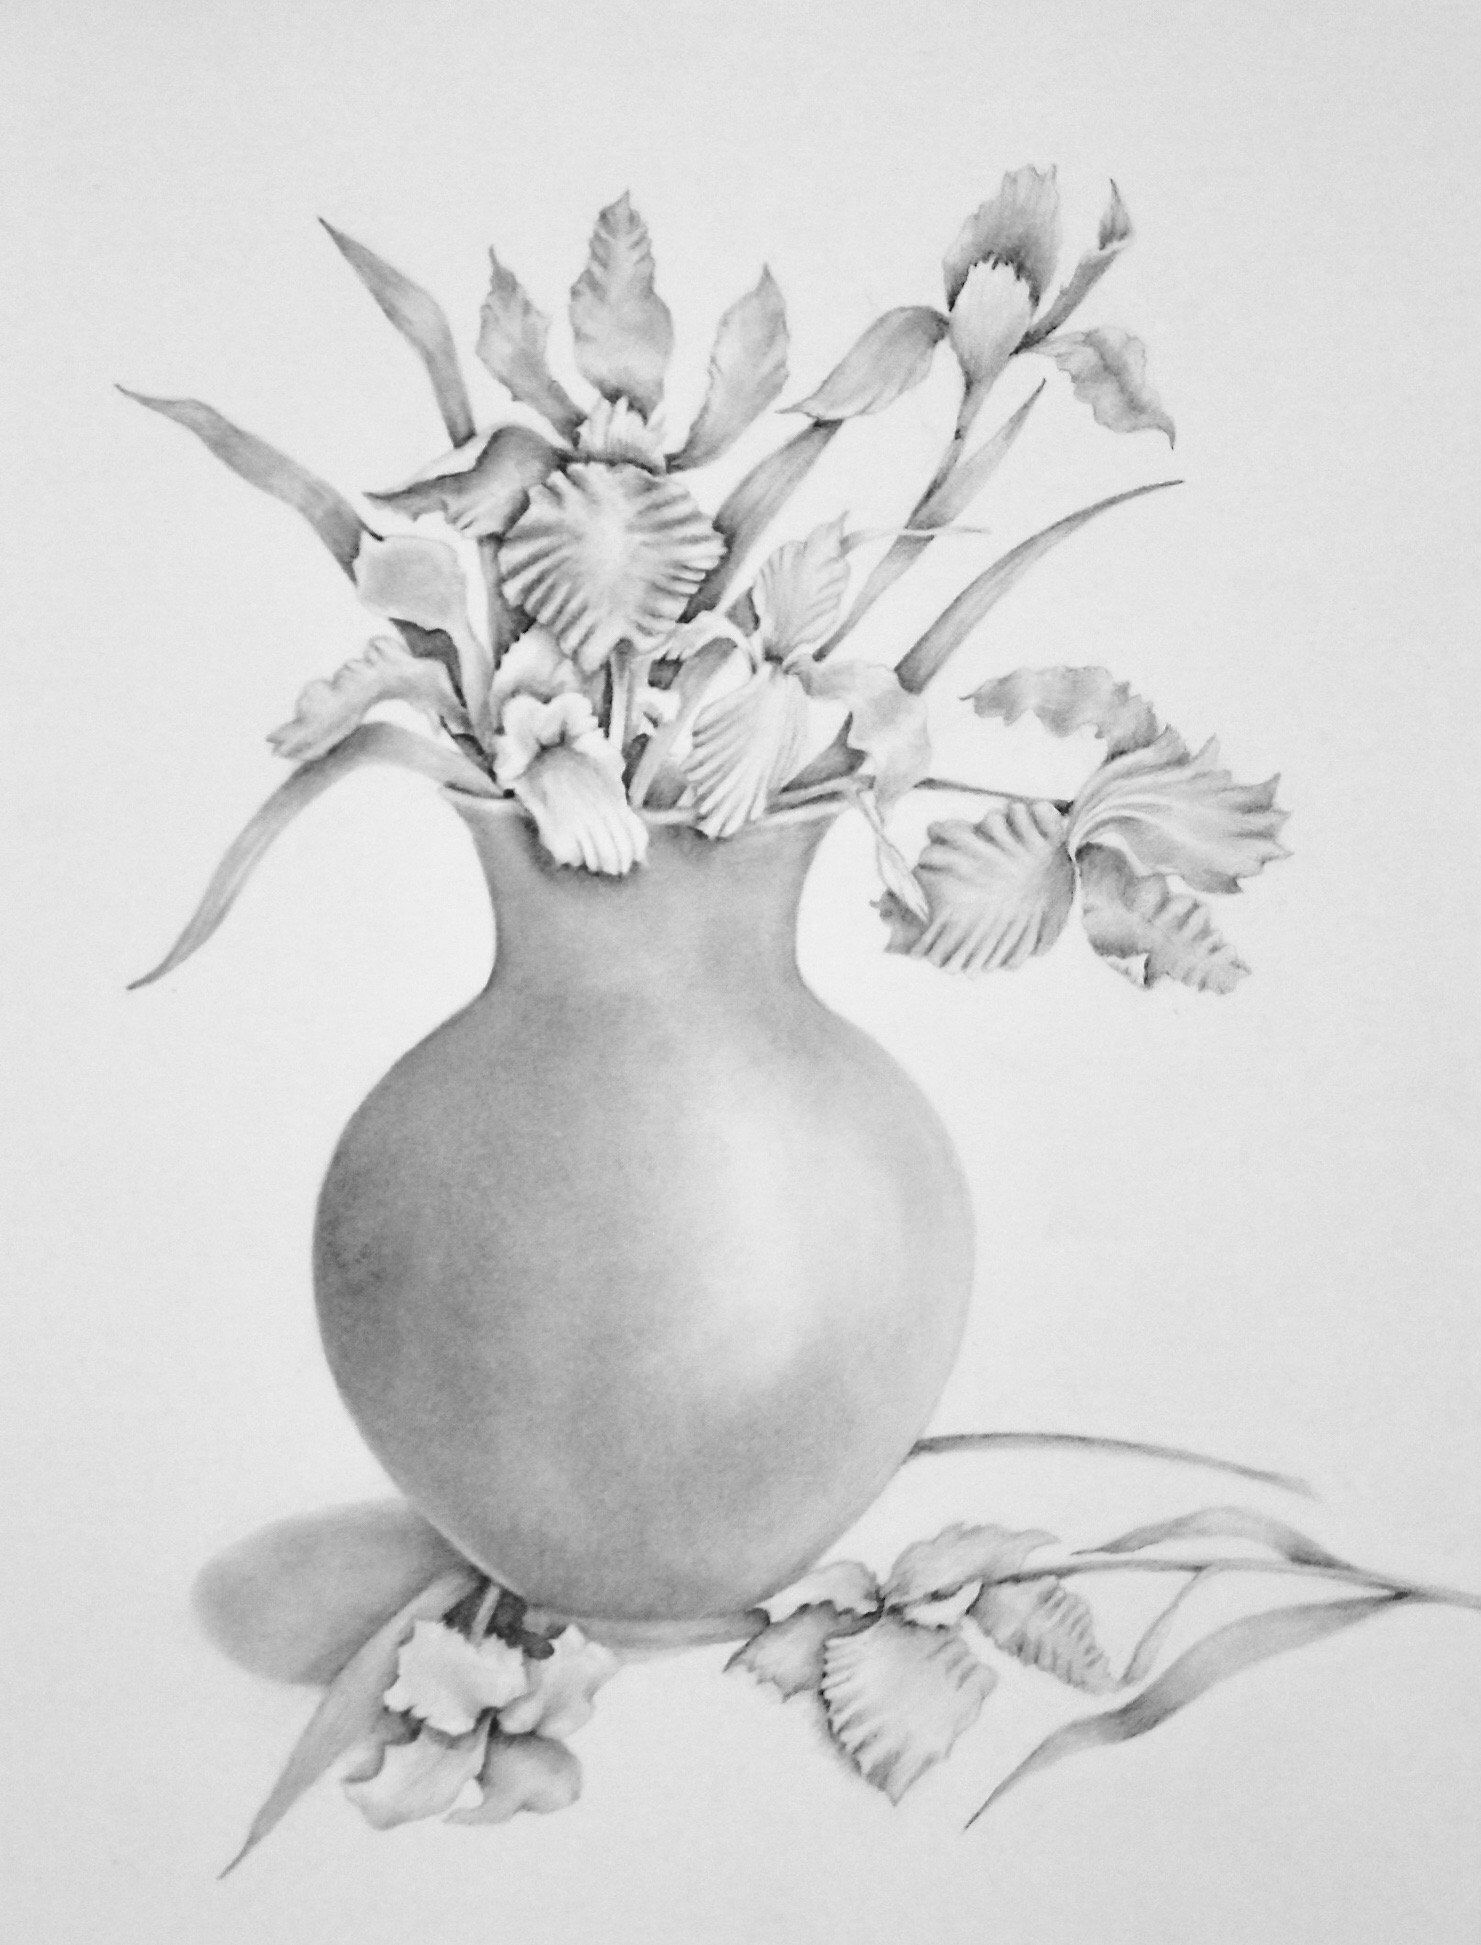 Pencil Drawing Of Irises In Vase Flower Art Pencil Art